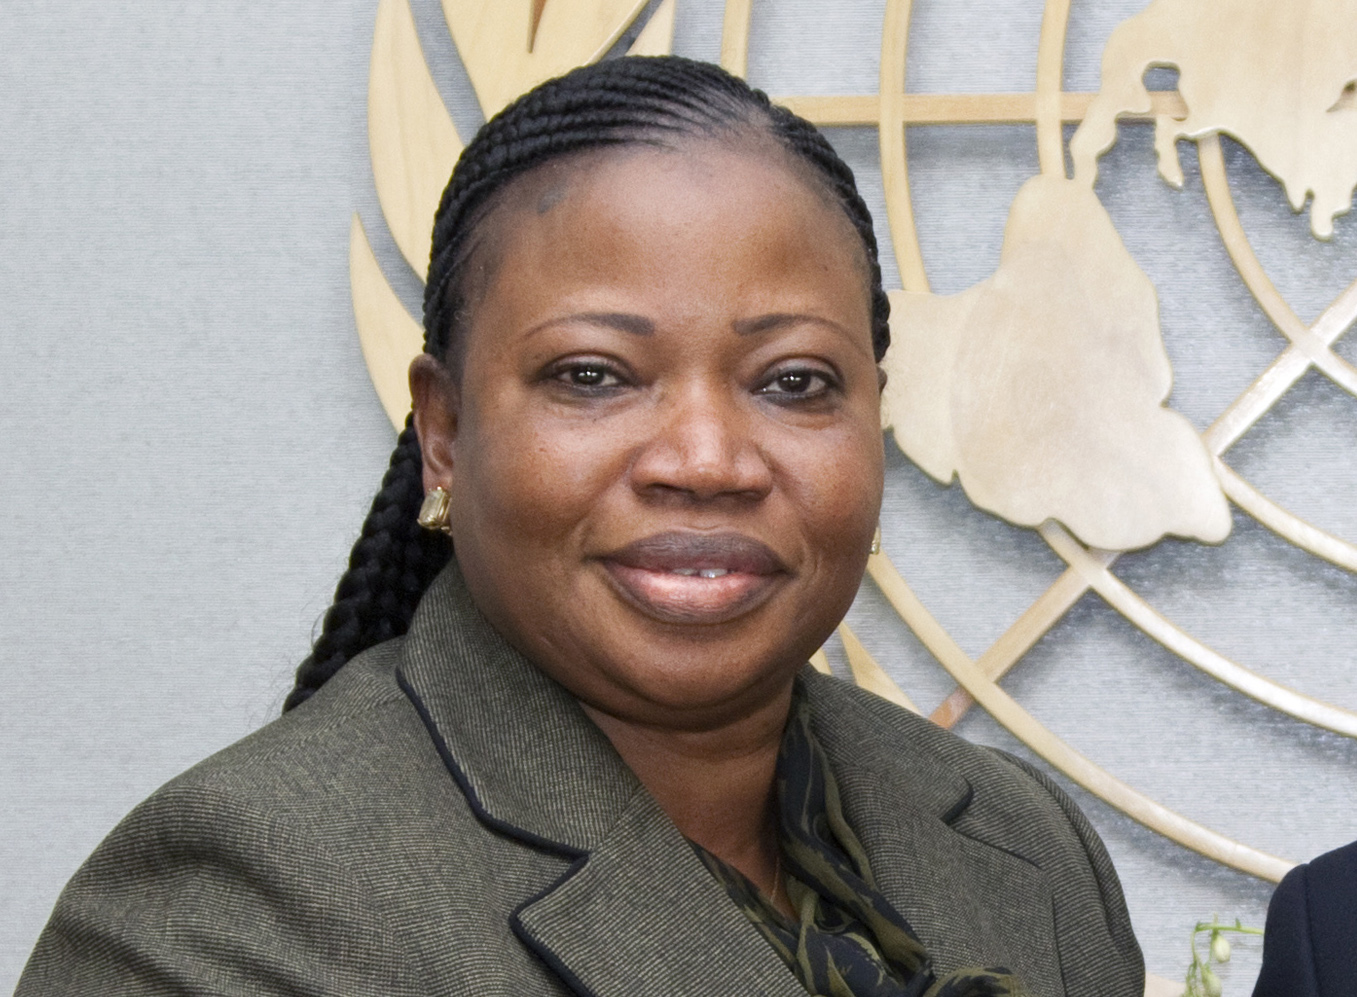 Fatou Bensouda, new Prosecutor of the International Criminal Court (ICC)